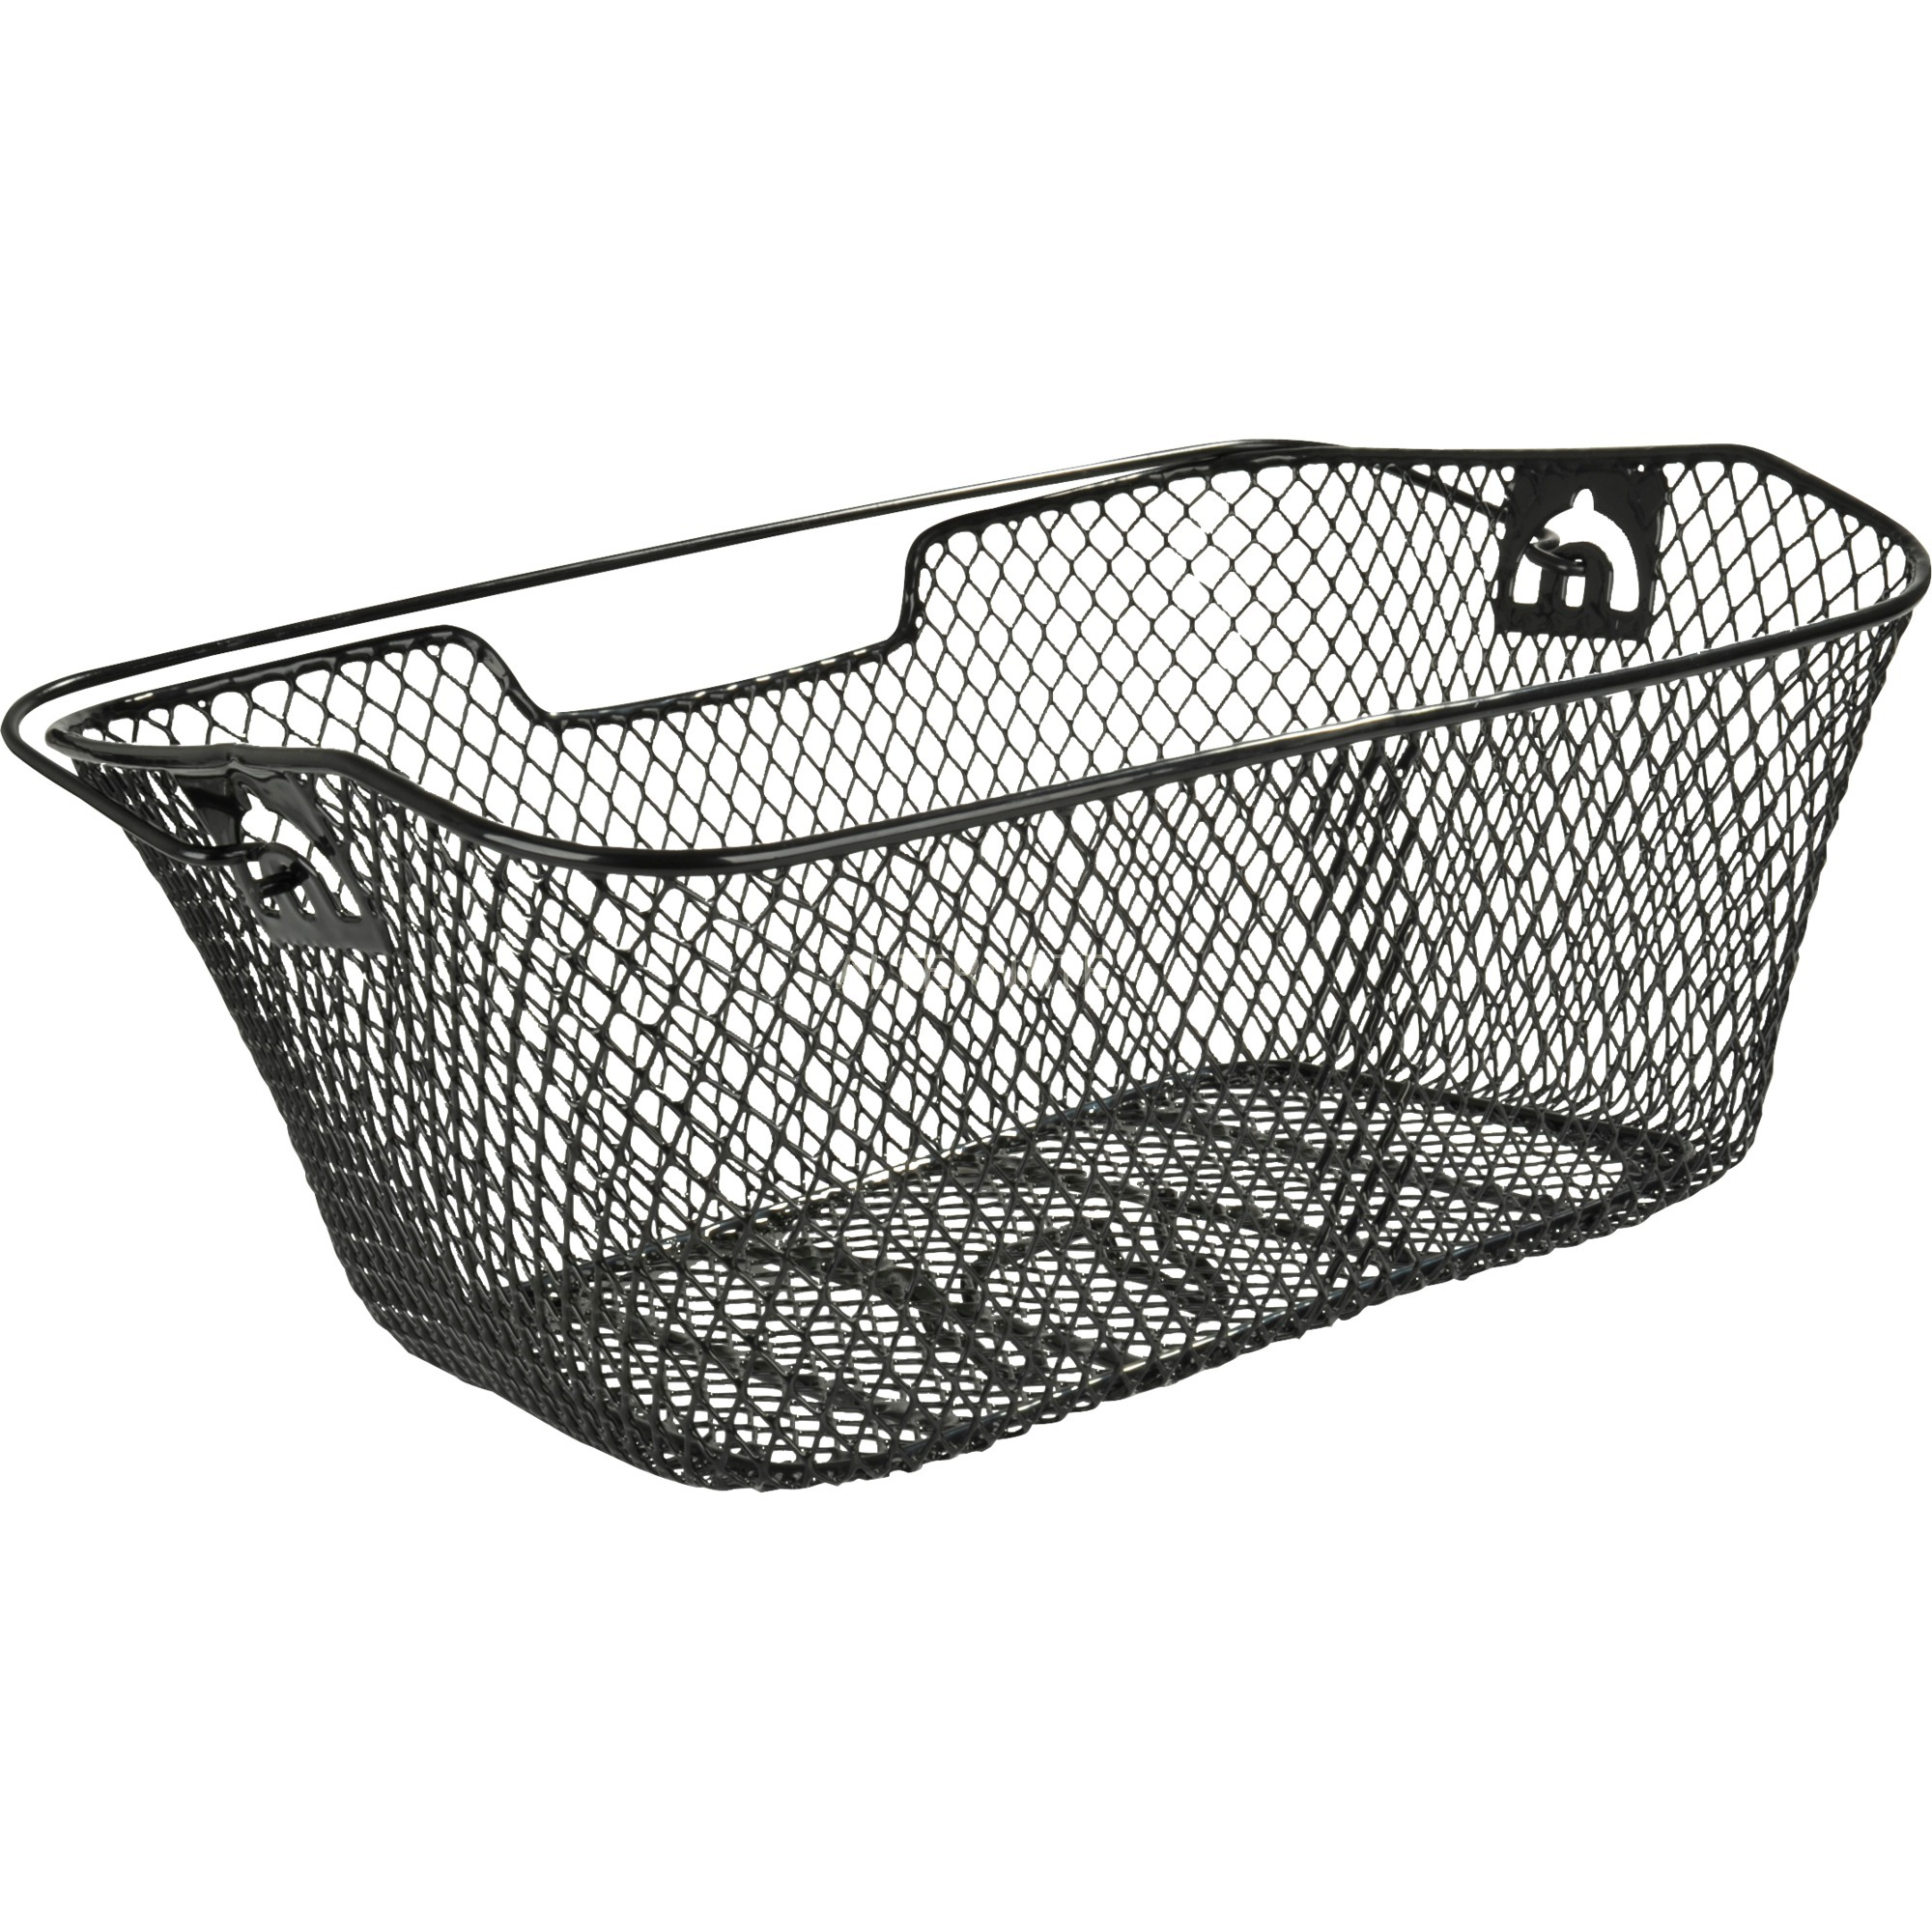 61063 Bicycle basket Negro, Almacenamiento